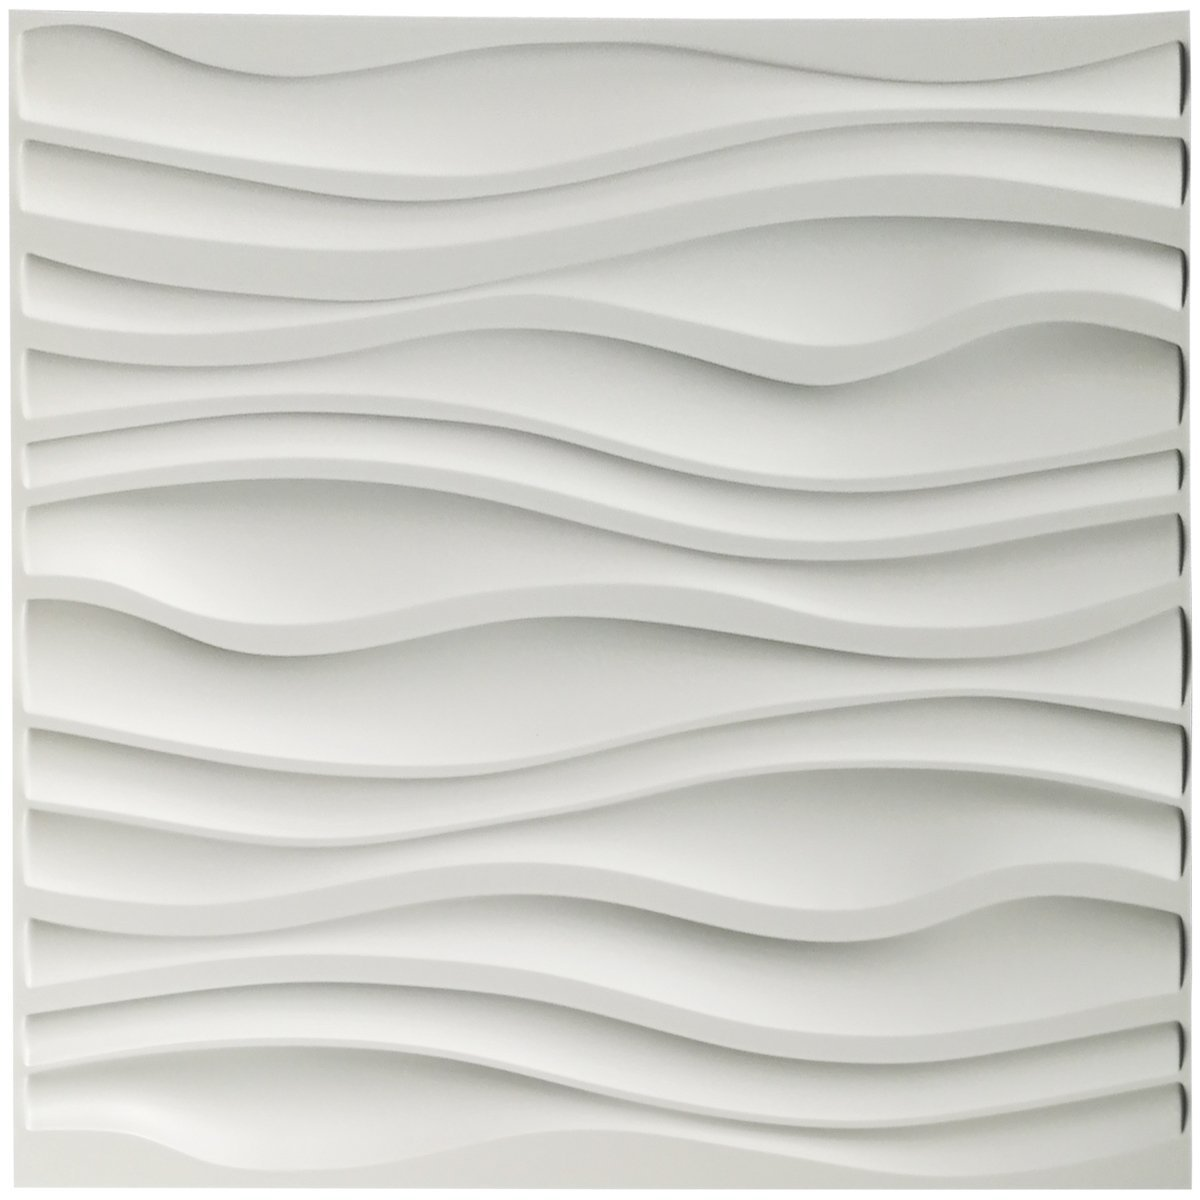 Art3d PVC Wave Board Textured